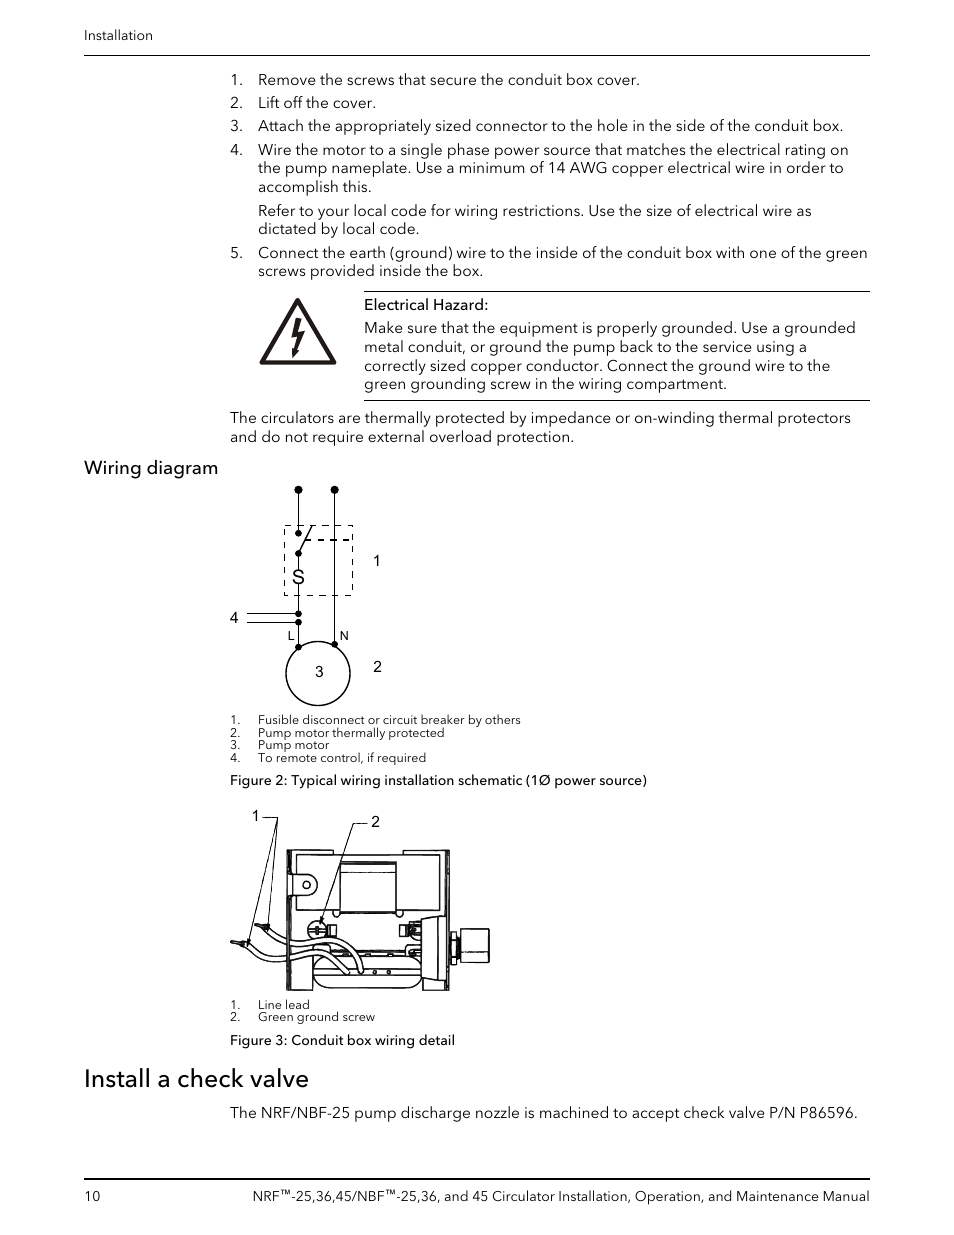 Wiring Diagram Install A Check Valve Bell Gossett P86203f Nbf Motor Overload Relay Diagrams 45 Circulator User Manual Page 12 20